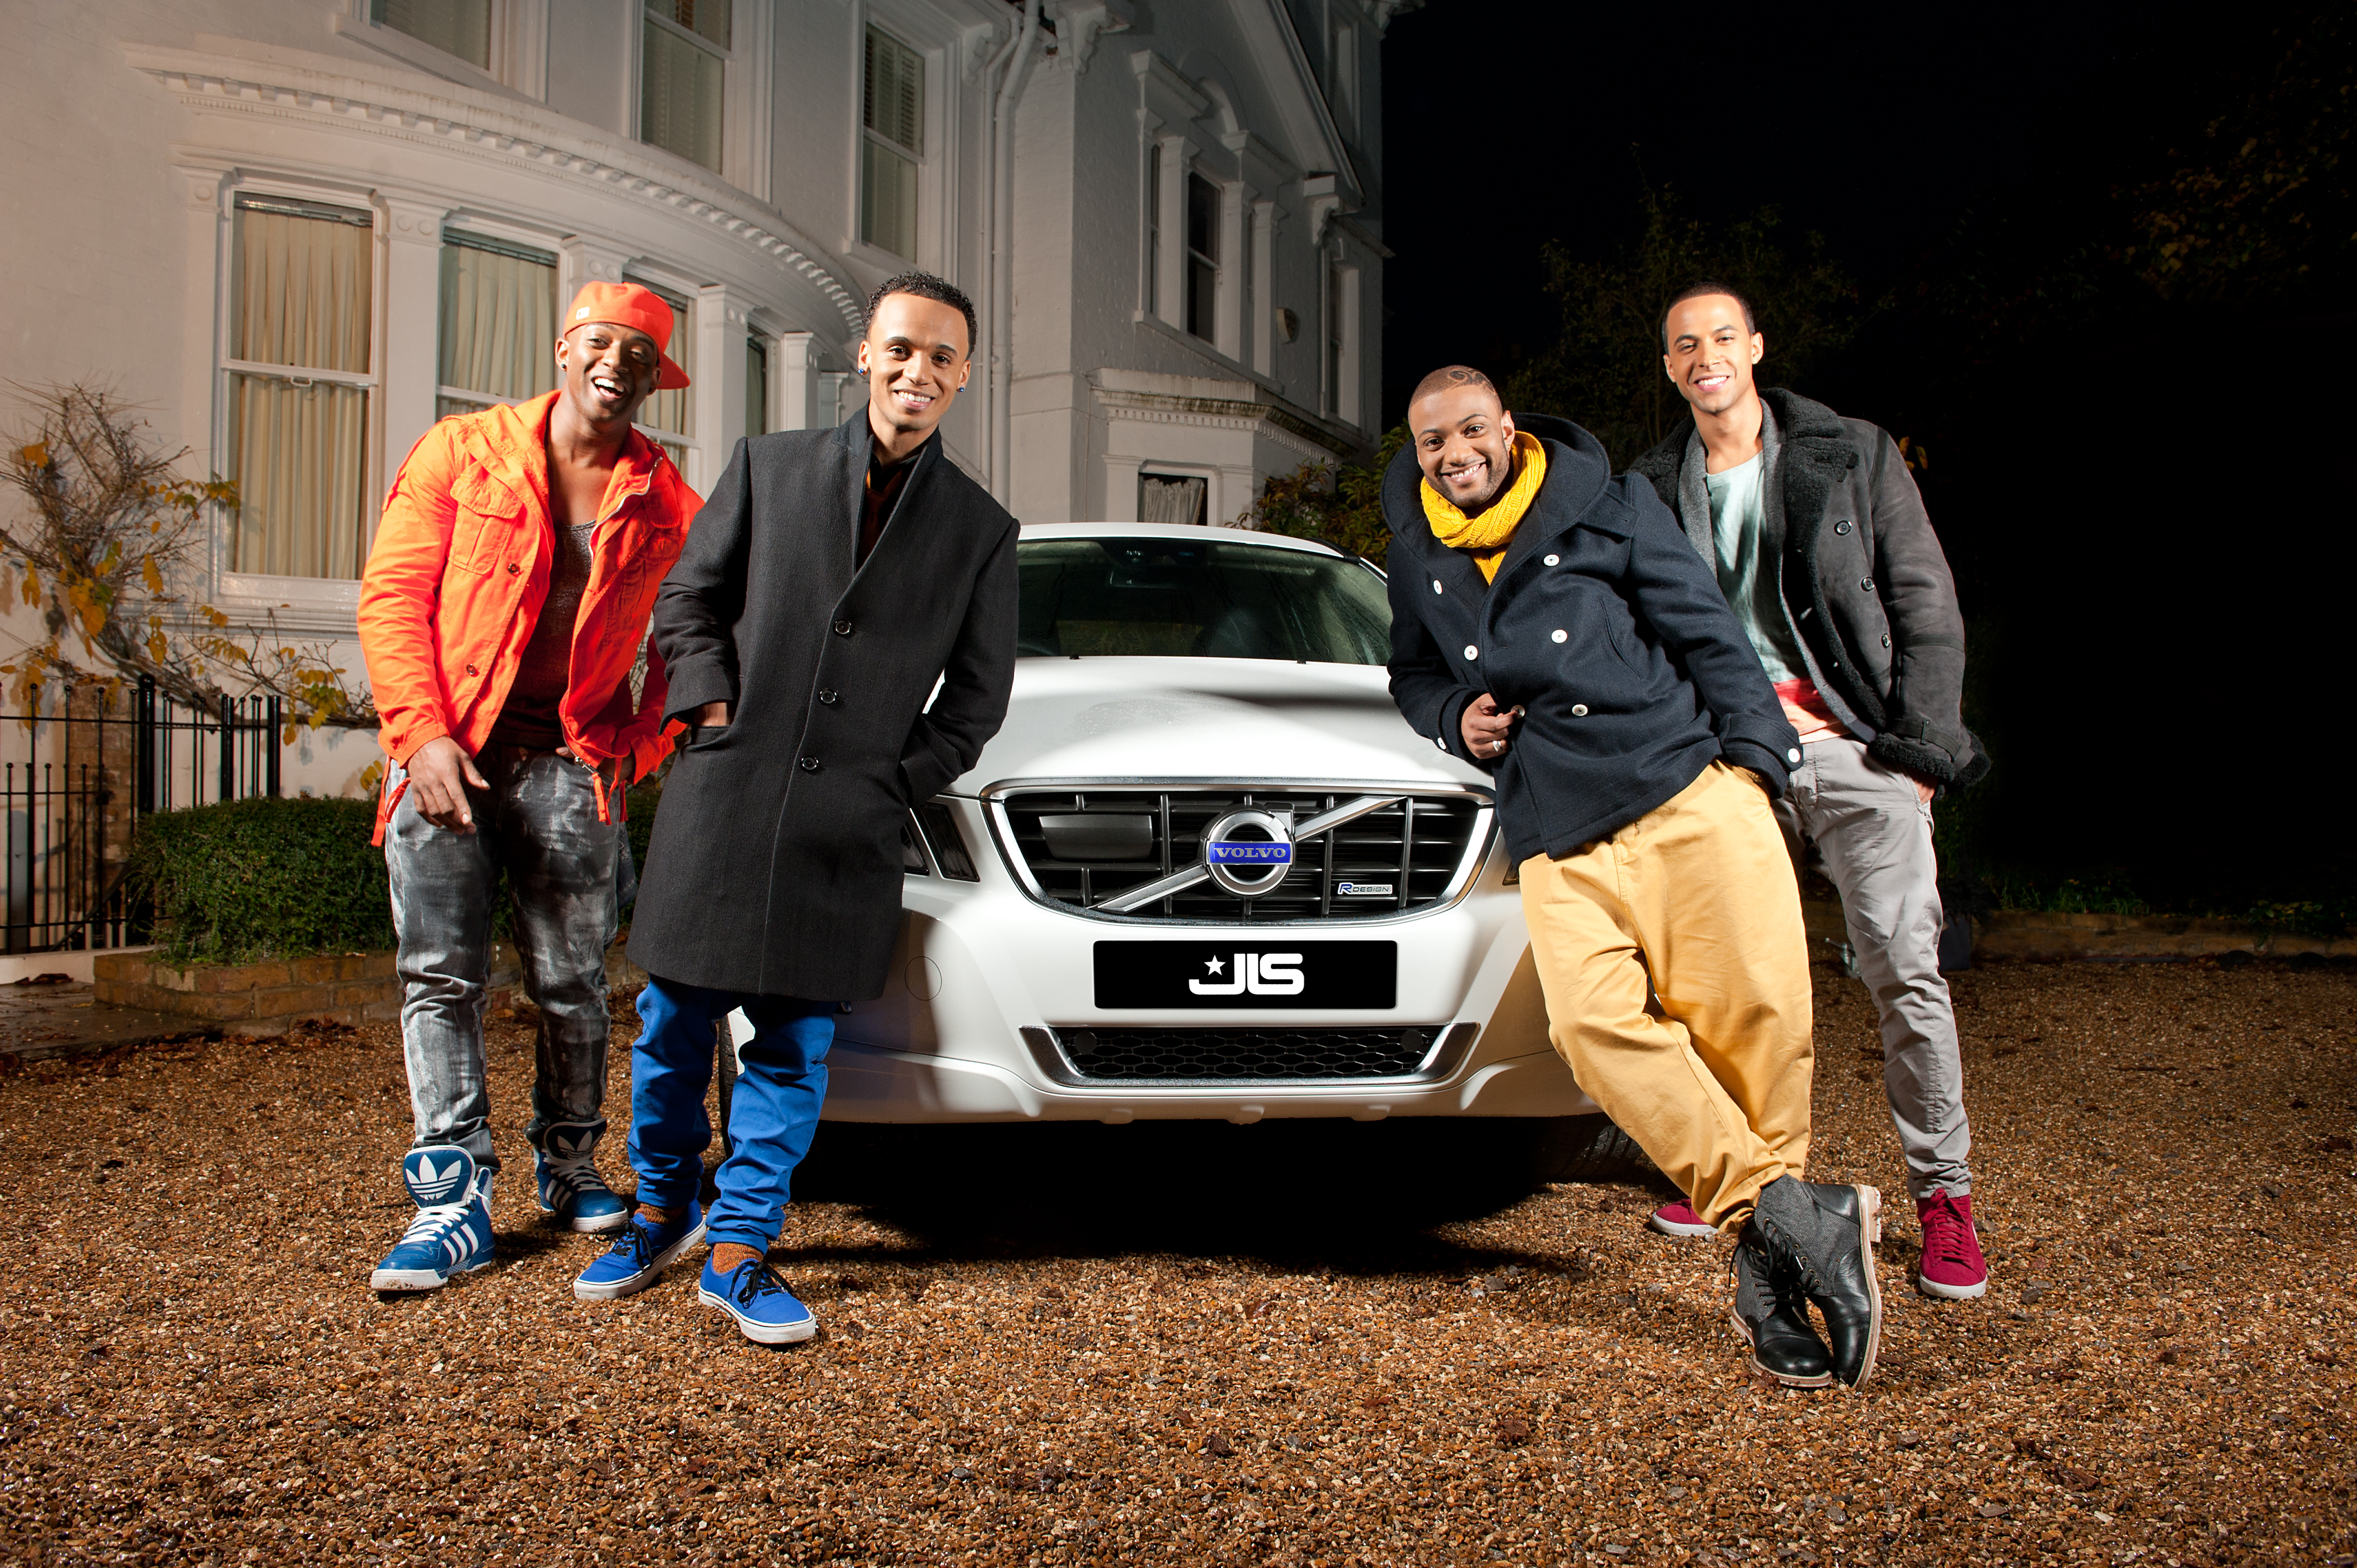 JLS DoYouFeelWhatIFeel photoby IdilSukan DrawHQ 38 Hot Shots: JLS Play In The Snow For New Video